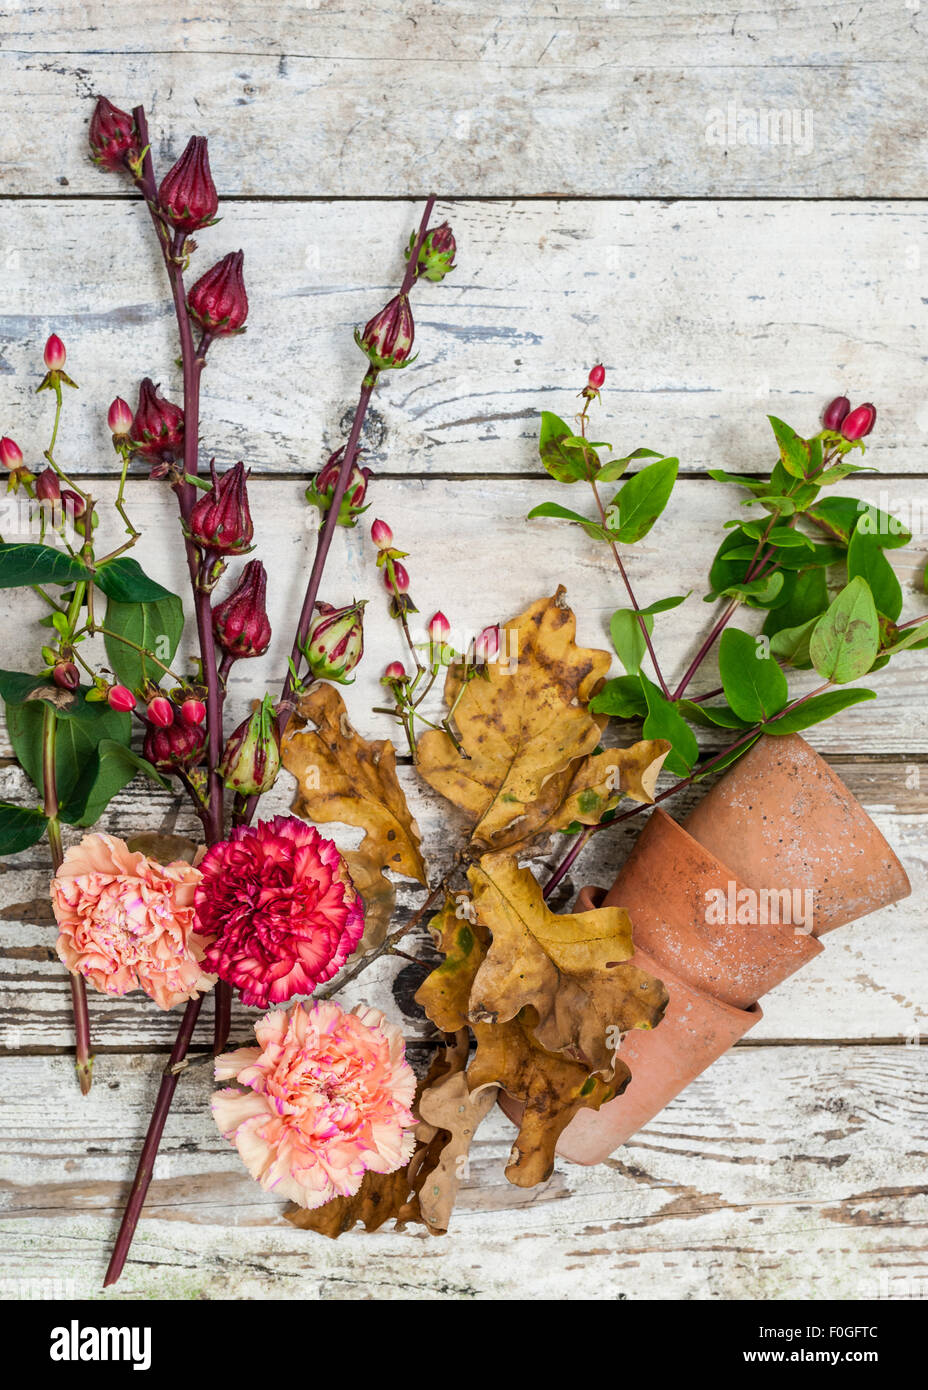 autumn flowers and berries on a rustic surface - Stock Image